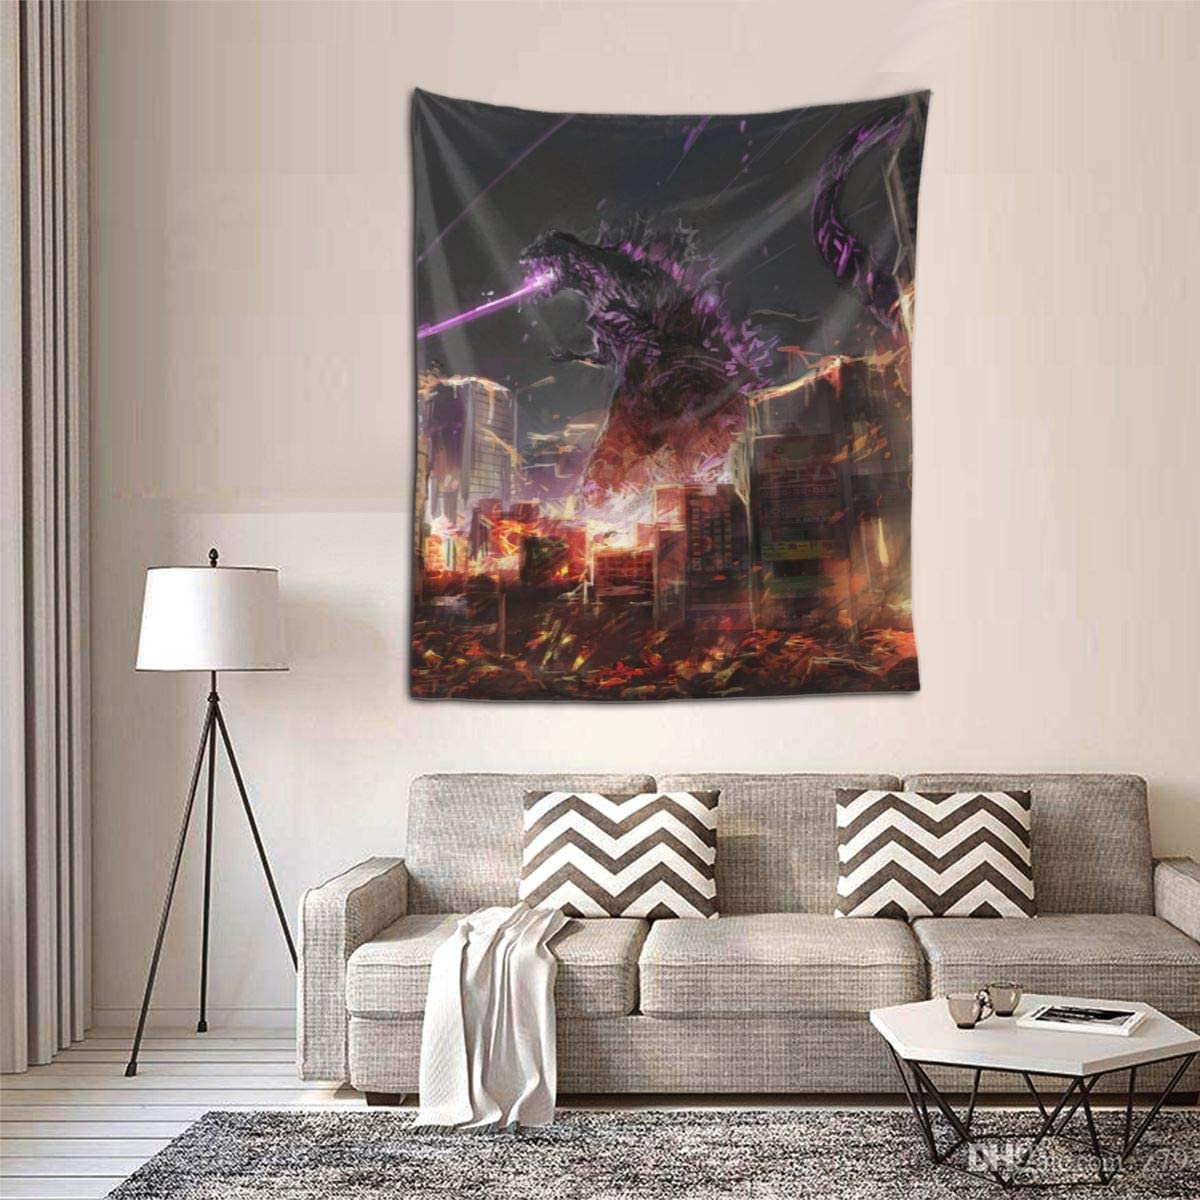 Little Monster Godzilla Prints Tapestries Artwork Wall Blanket Tapestry Wall Hanging Wall Art Poster for Dinning Room Party Modern Wall Decor 80x60in 203x152cm